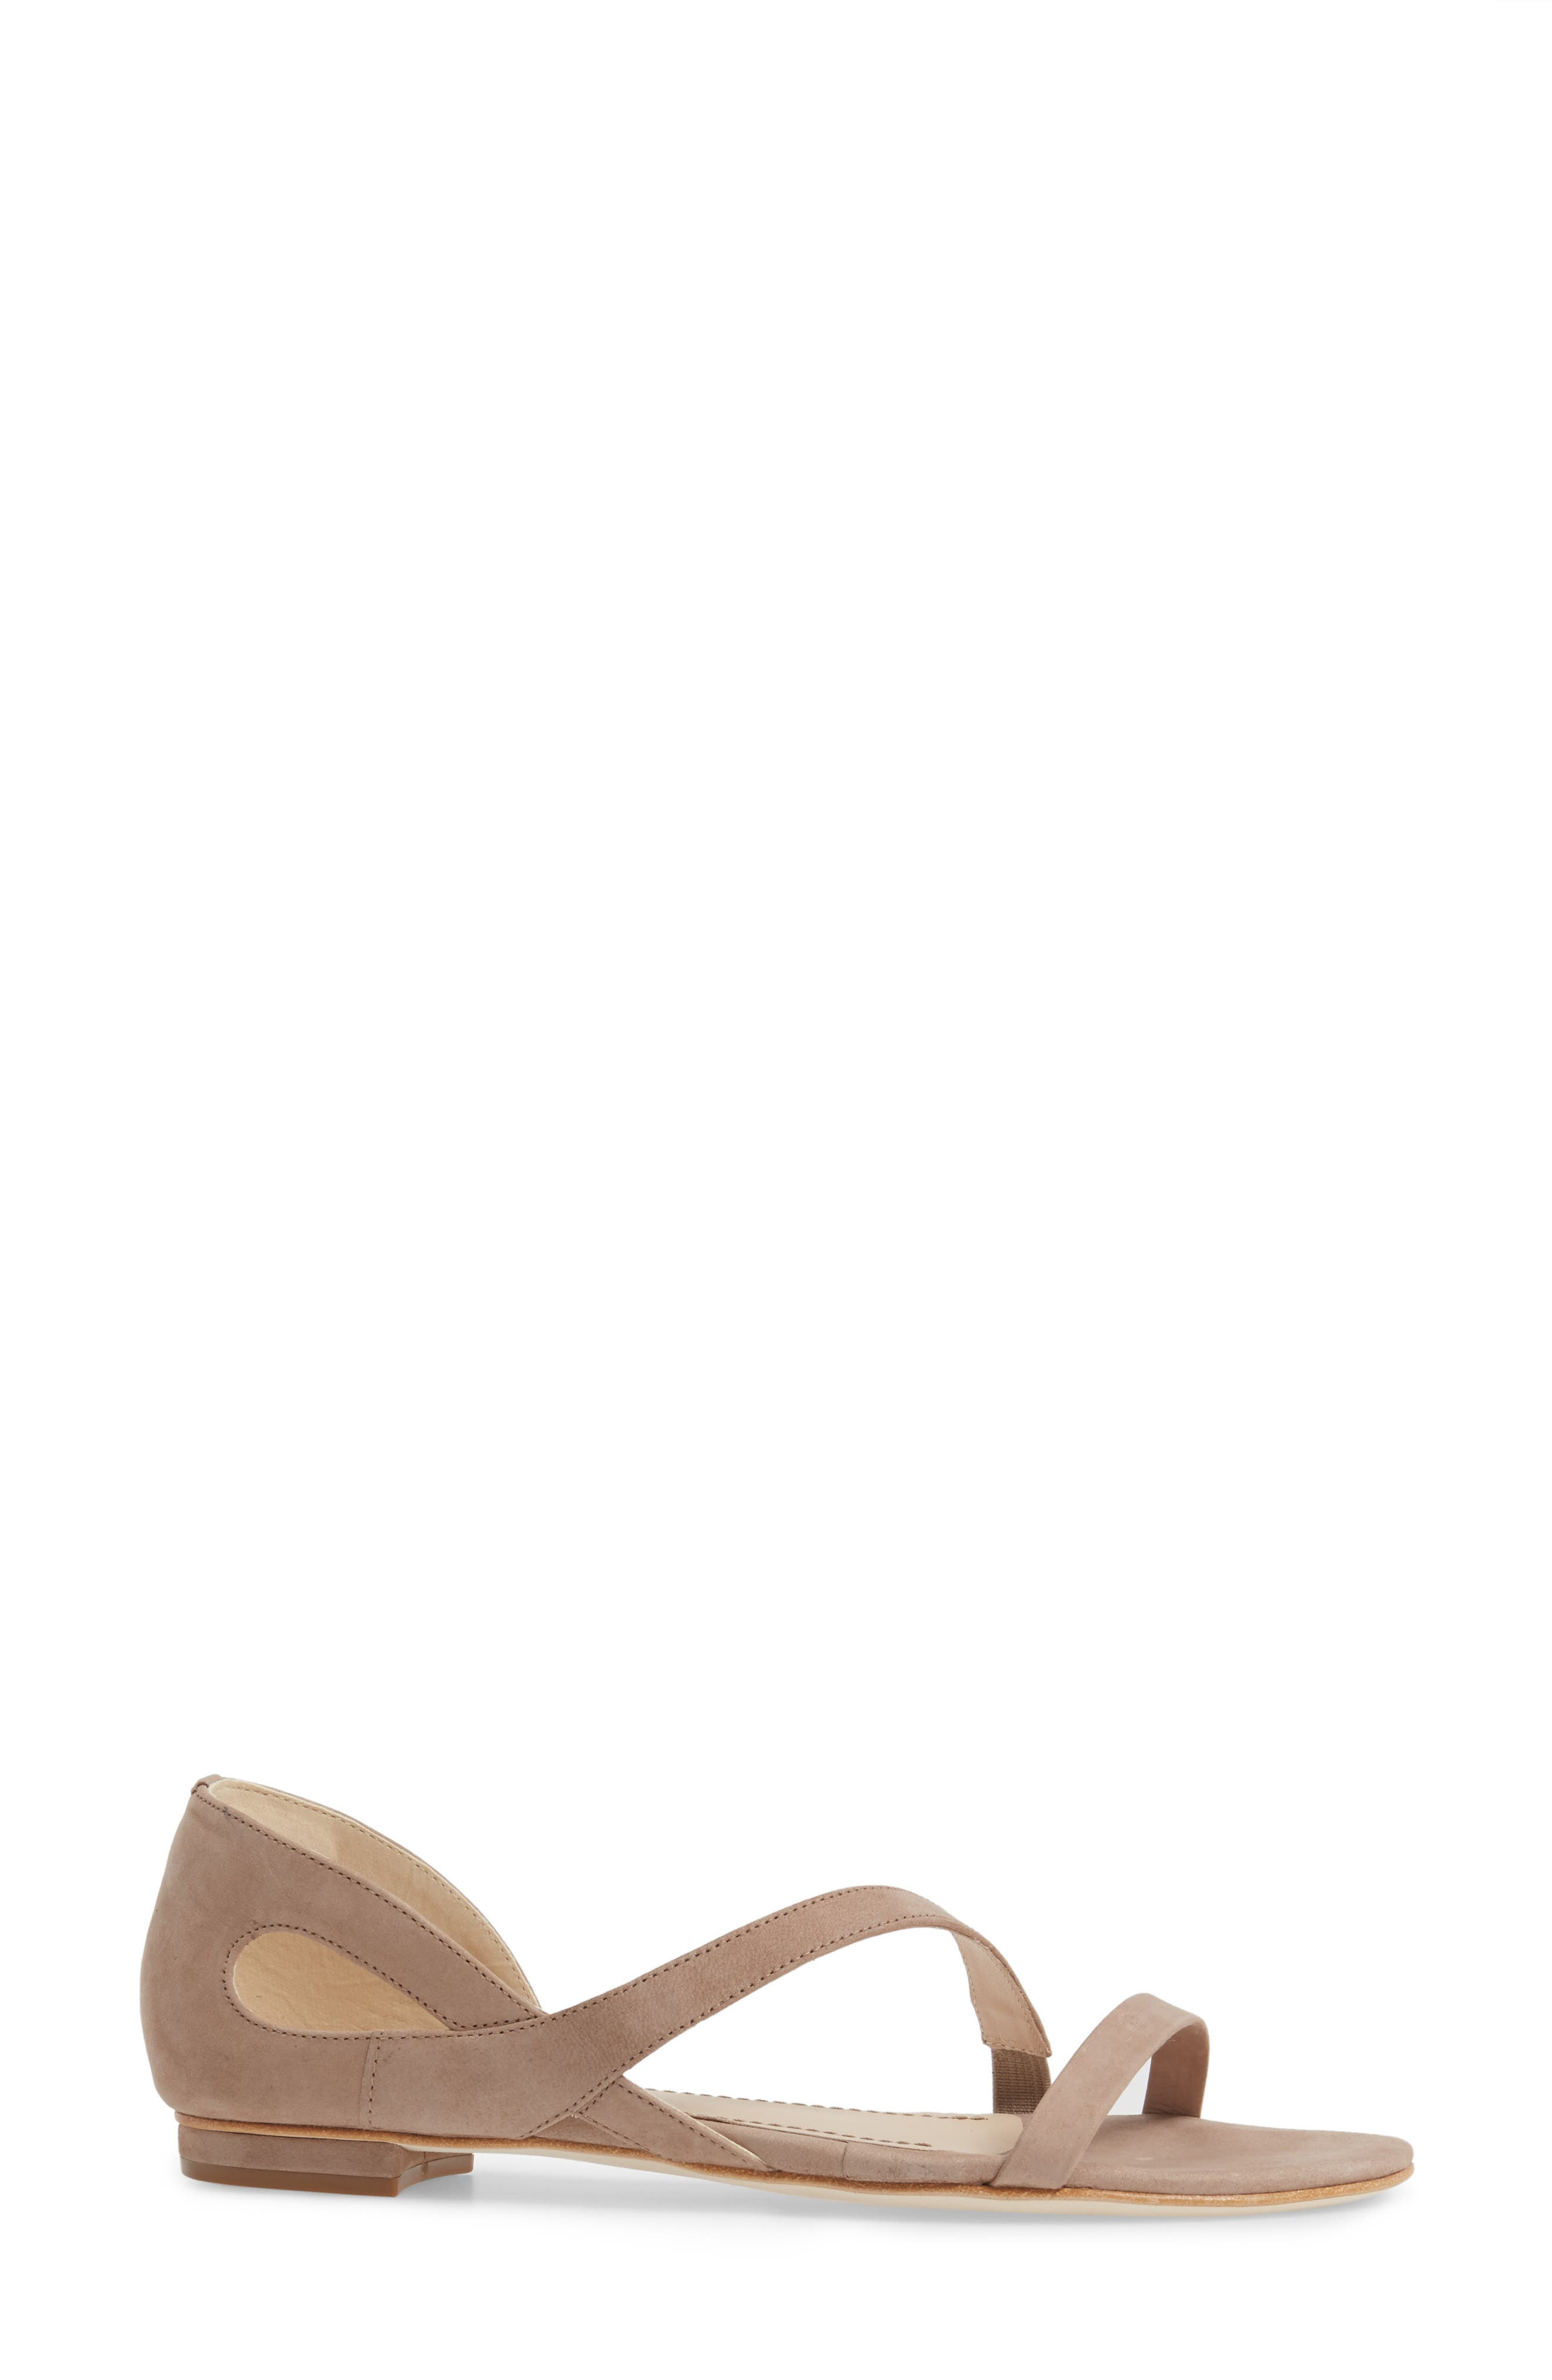 Jeanne Sandal,                             Alternate thumbnail 3, color,                             TAUPE LEATHER